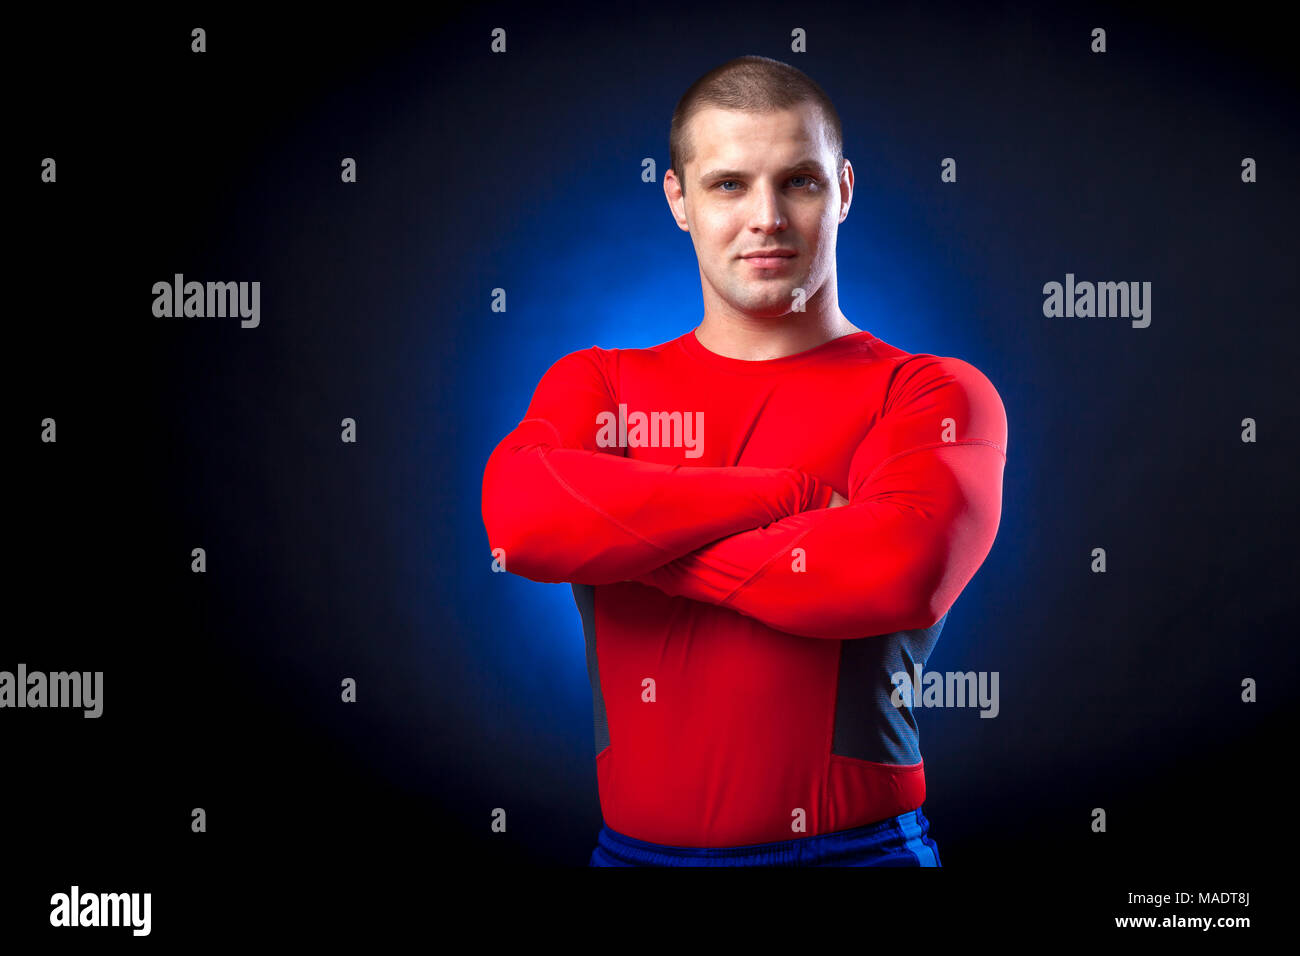 A strong dark-haired sportman  in a red sports wear  rush guard  smile and standing  against a blue a lights on a black isolated  background - Stock Image